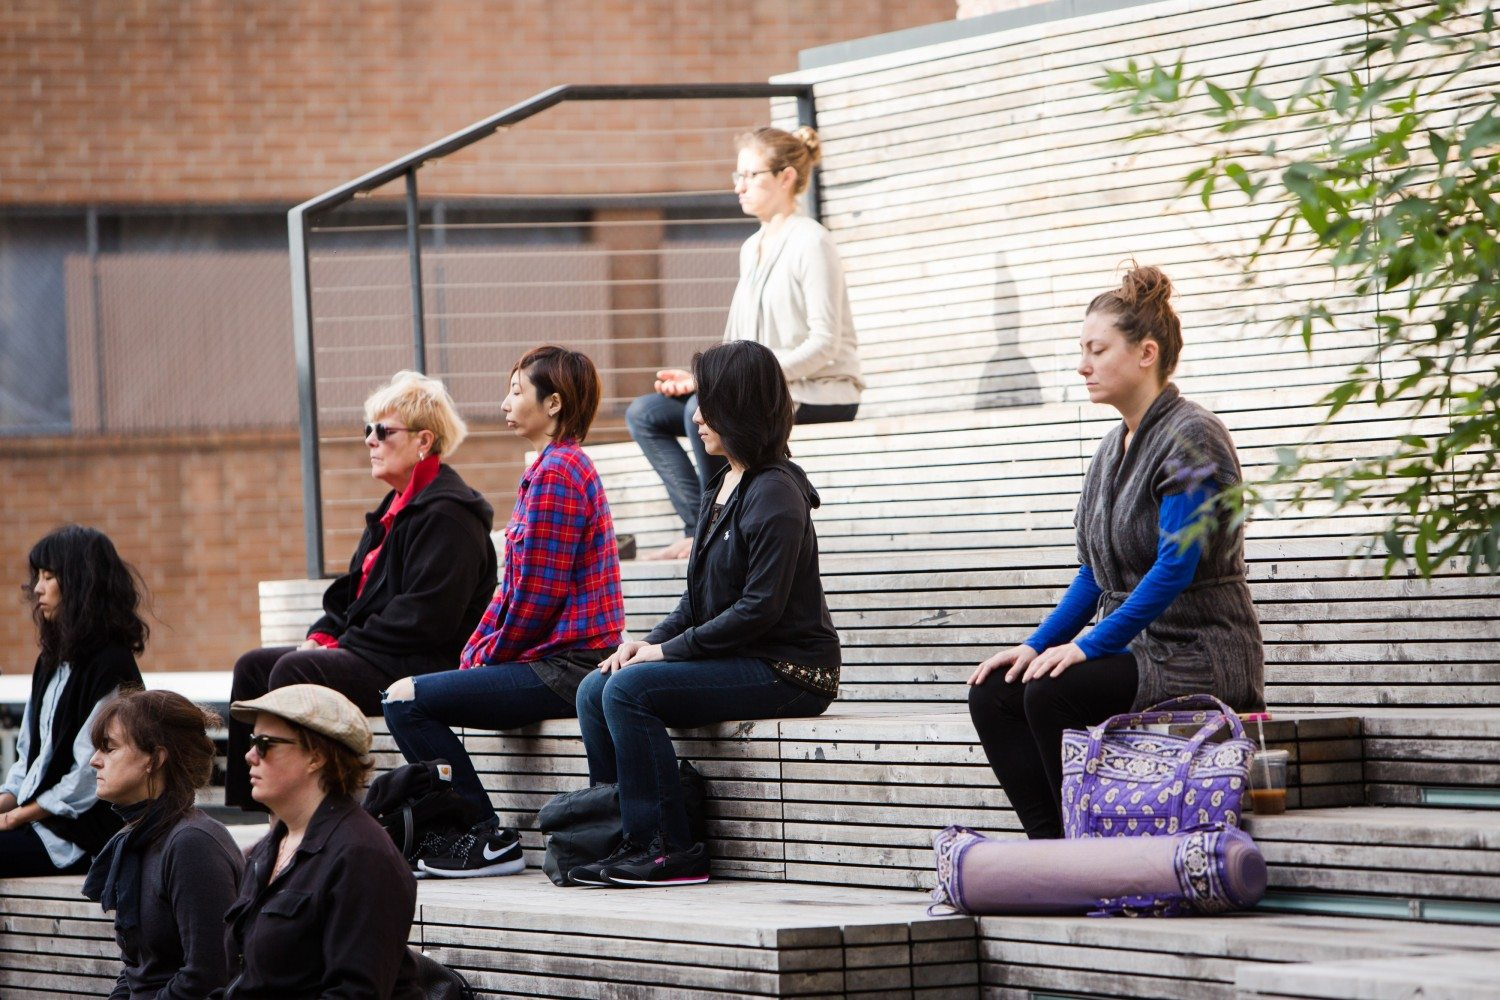 Start Your Wednesday's With Meditation at The High Line